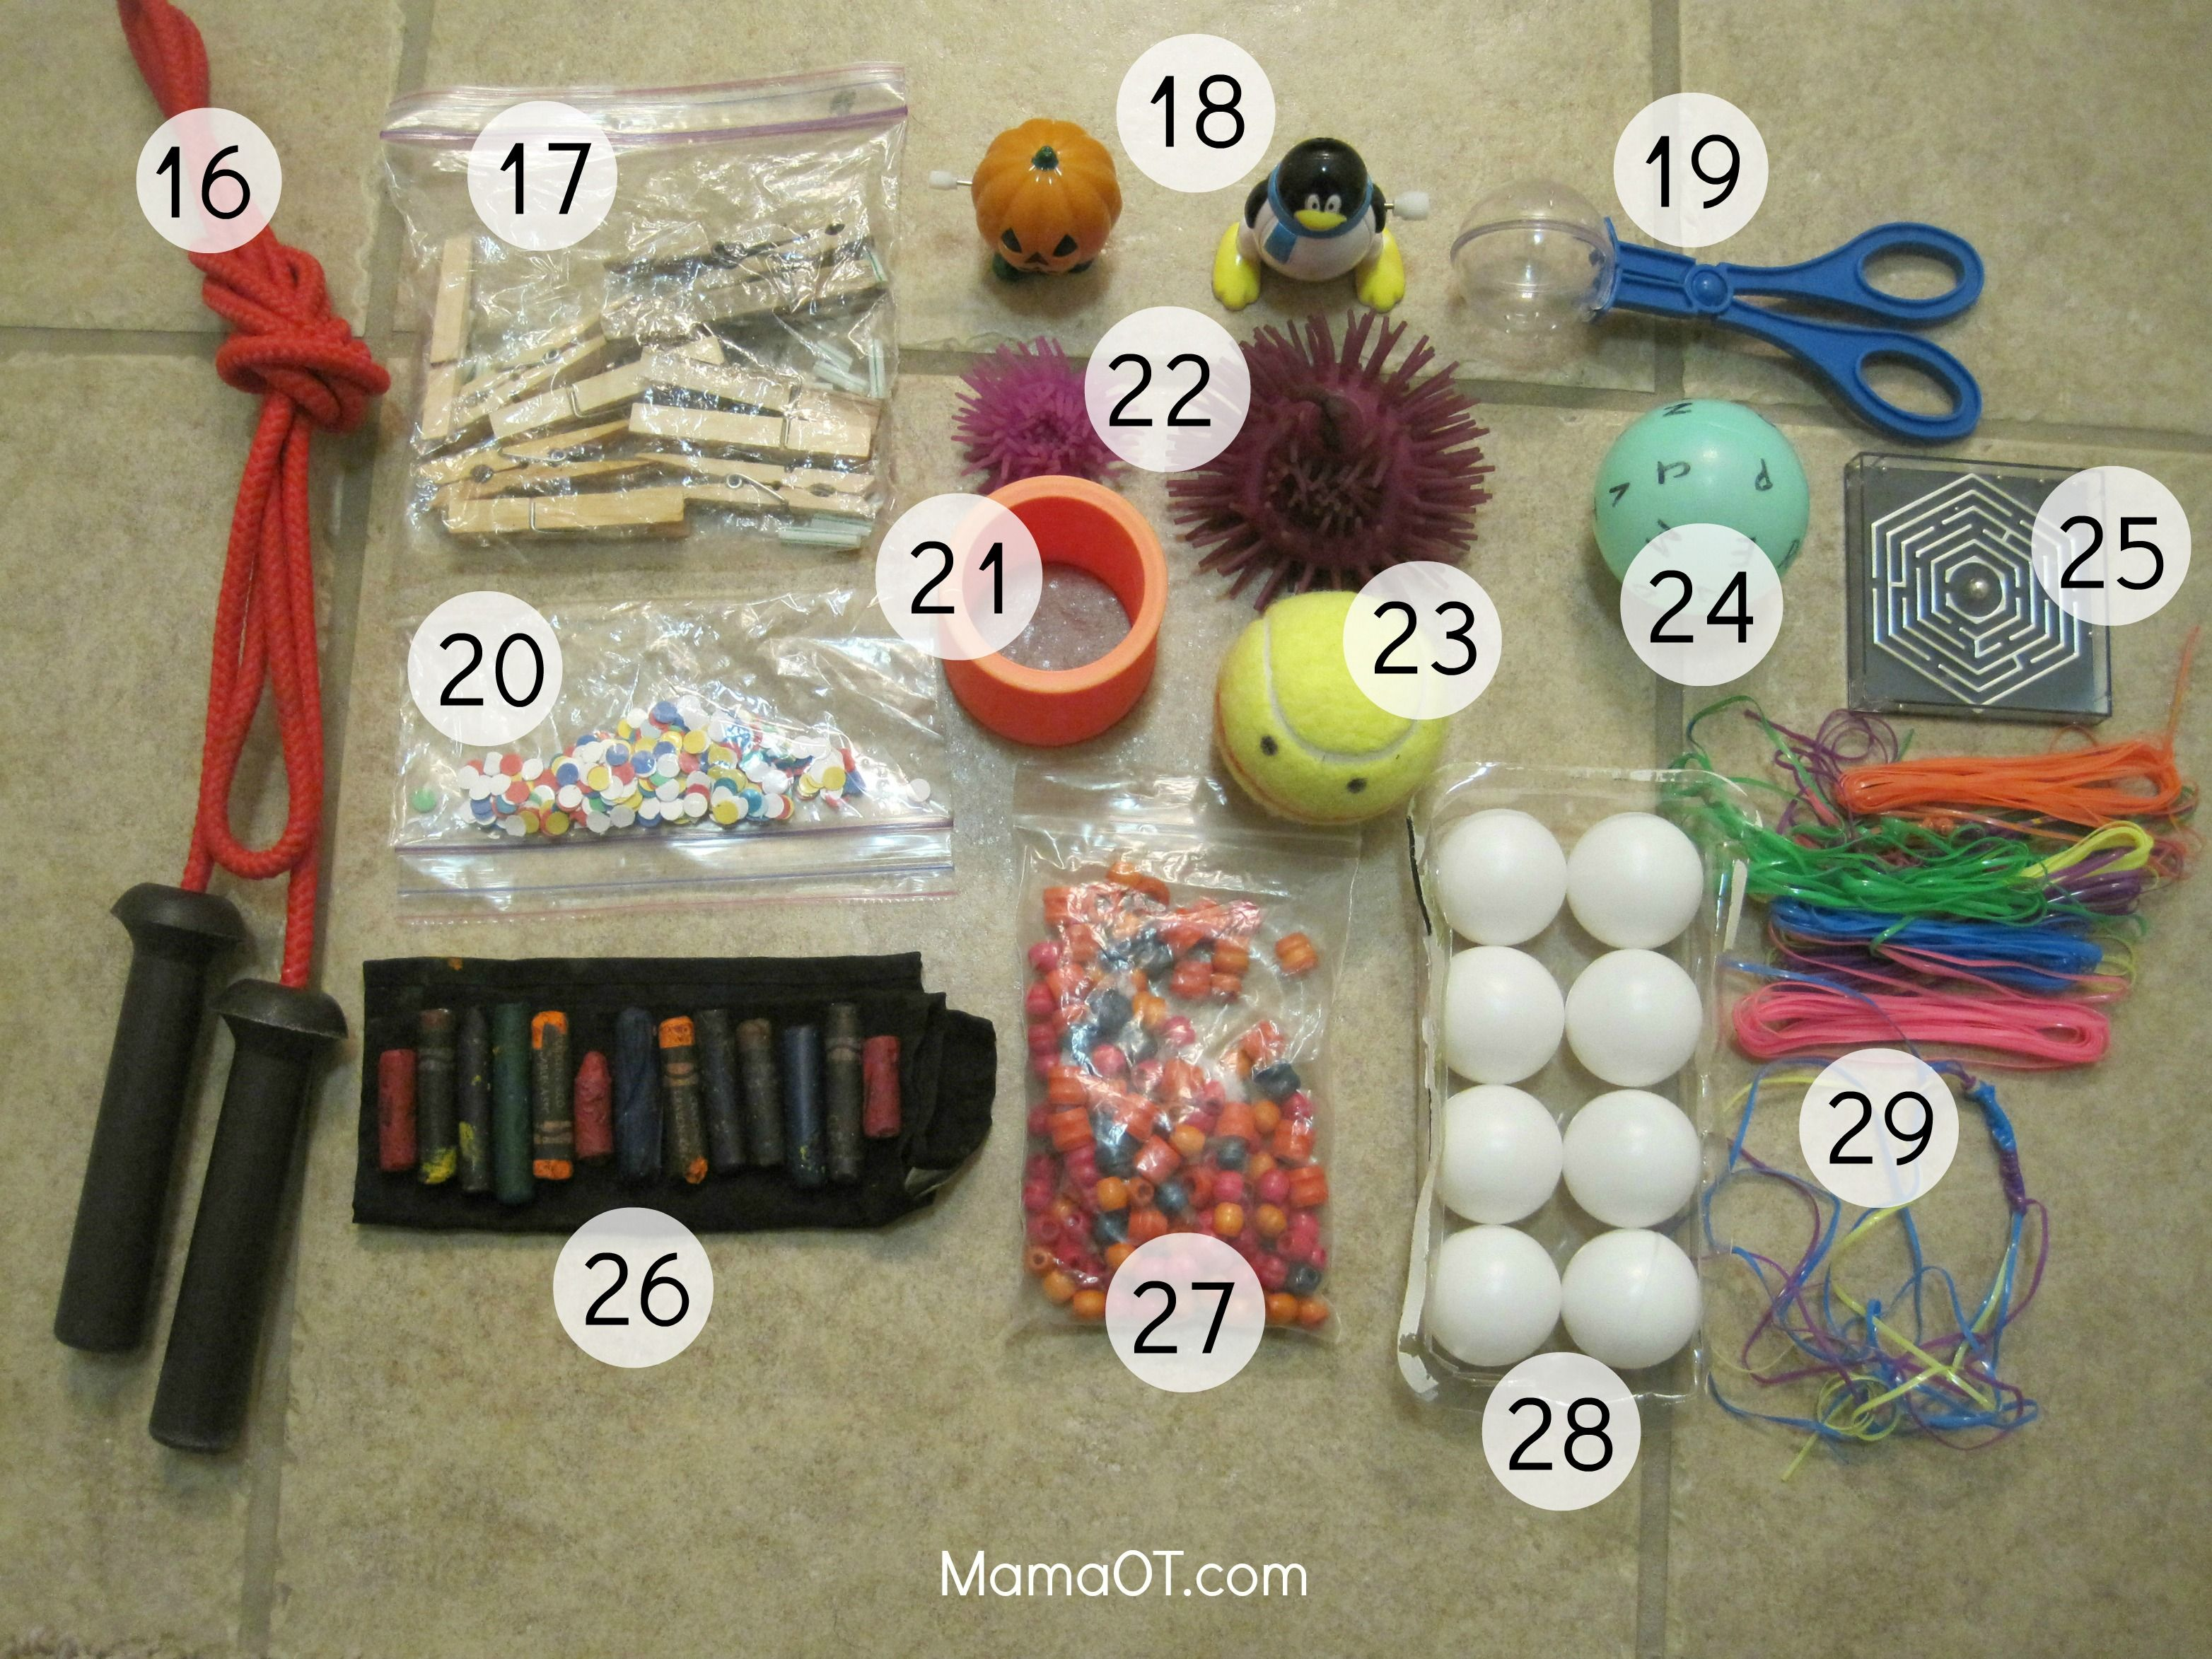 A Mom Occupational Therapist Reveals 50 Items In Her Box To Help Children